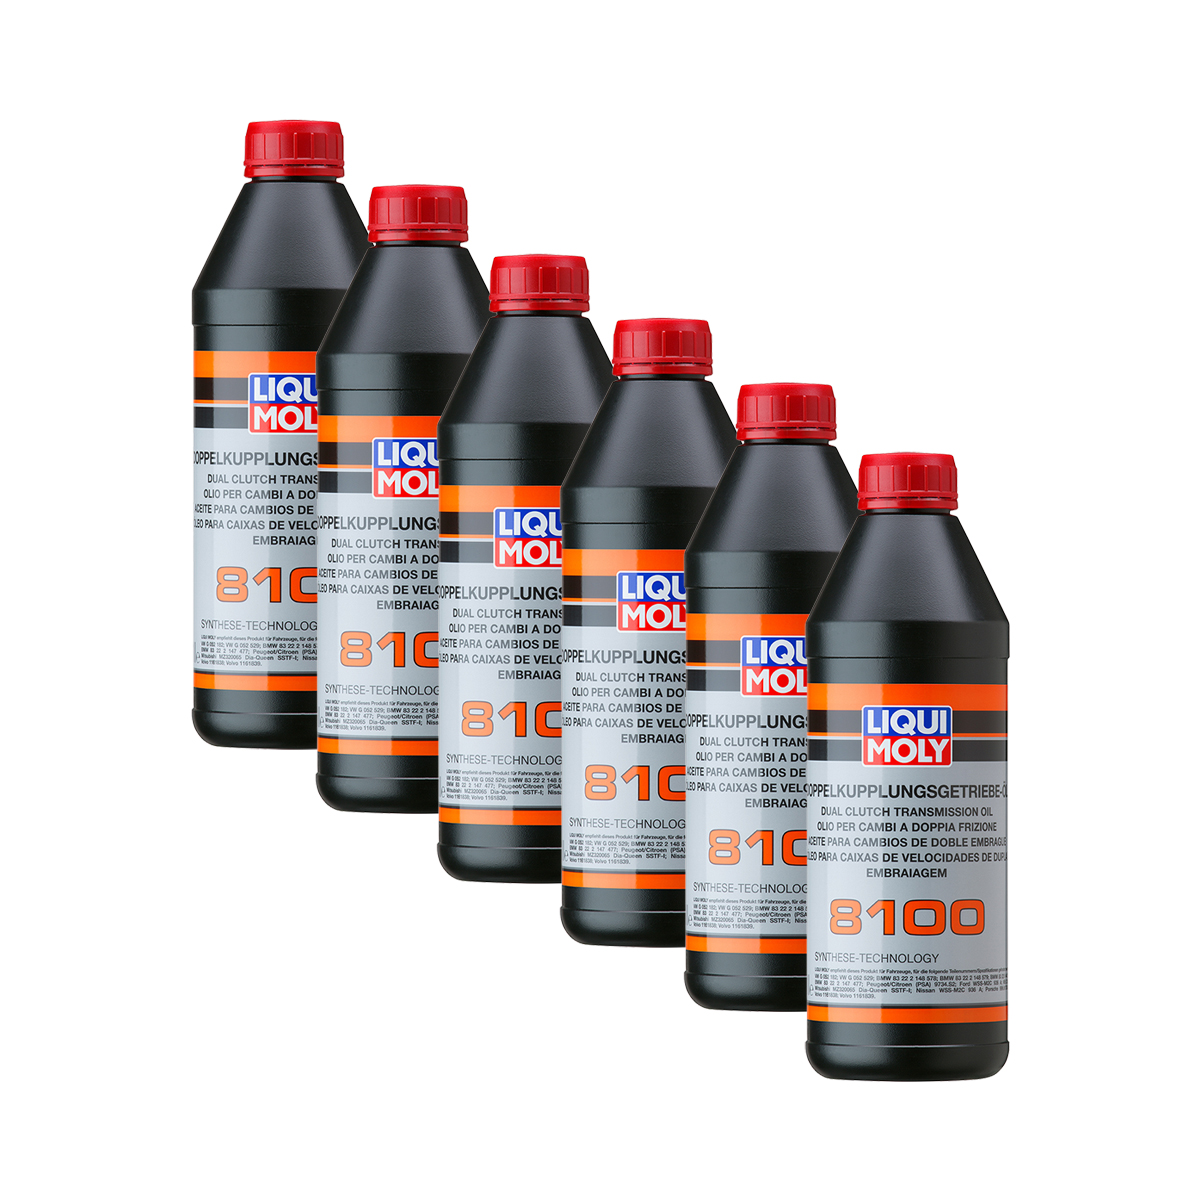 6x liqui moly 3640 doppelkupplungsgetriebe l 8100 f r audi vw bmw mb ford 1l ebay. Black Bedroom Furniture Sets. Home Design Ideas